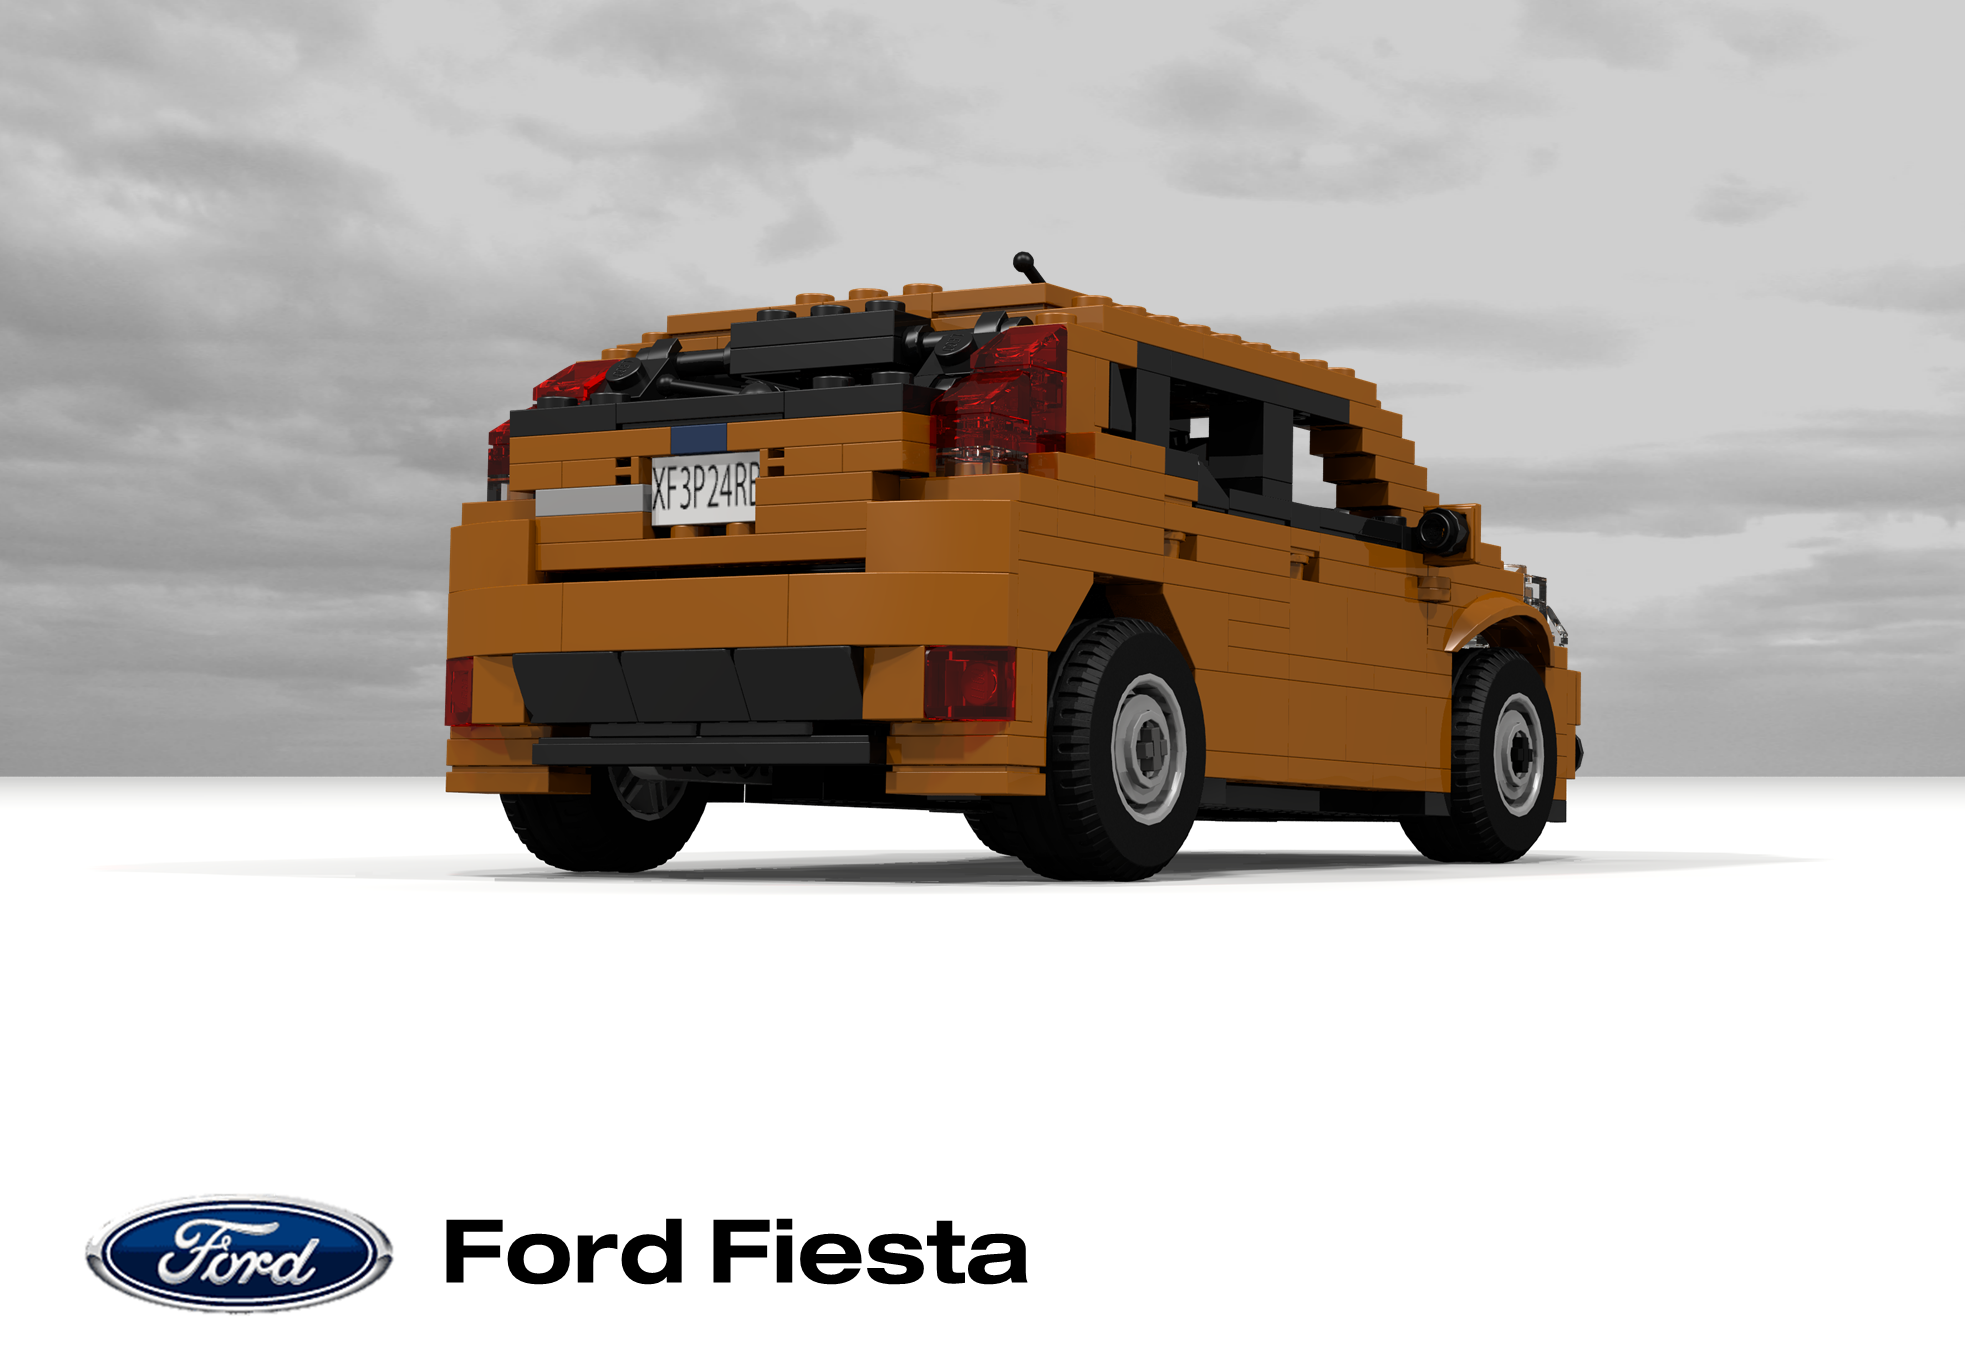 ford_fiesta_b299_base_5-door_03.png